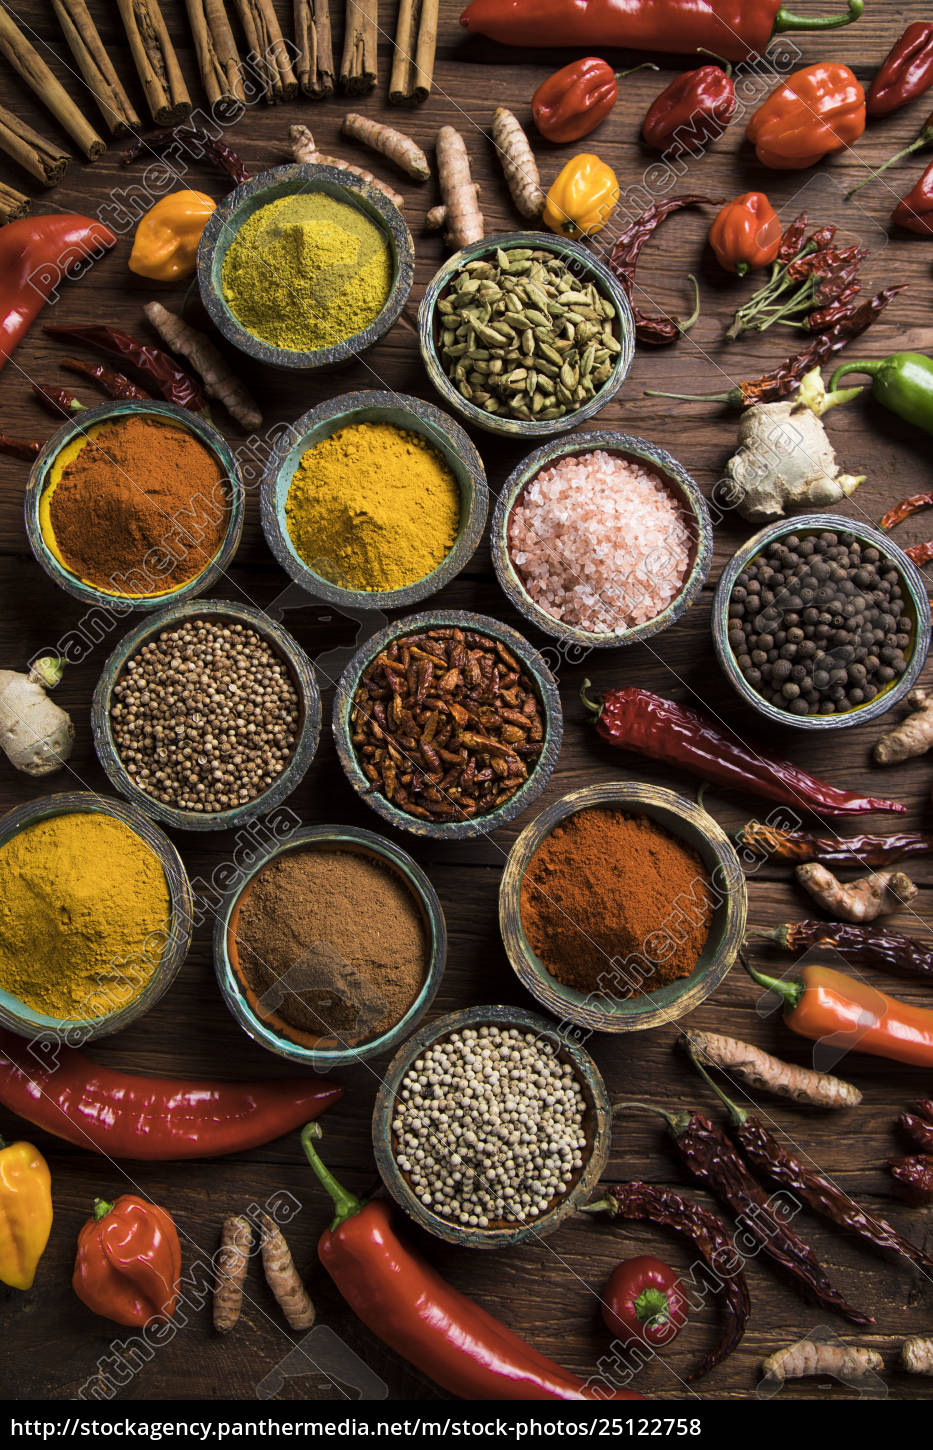 a, selection, of, various, colorful, spices - 25122758